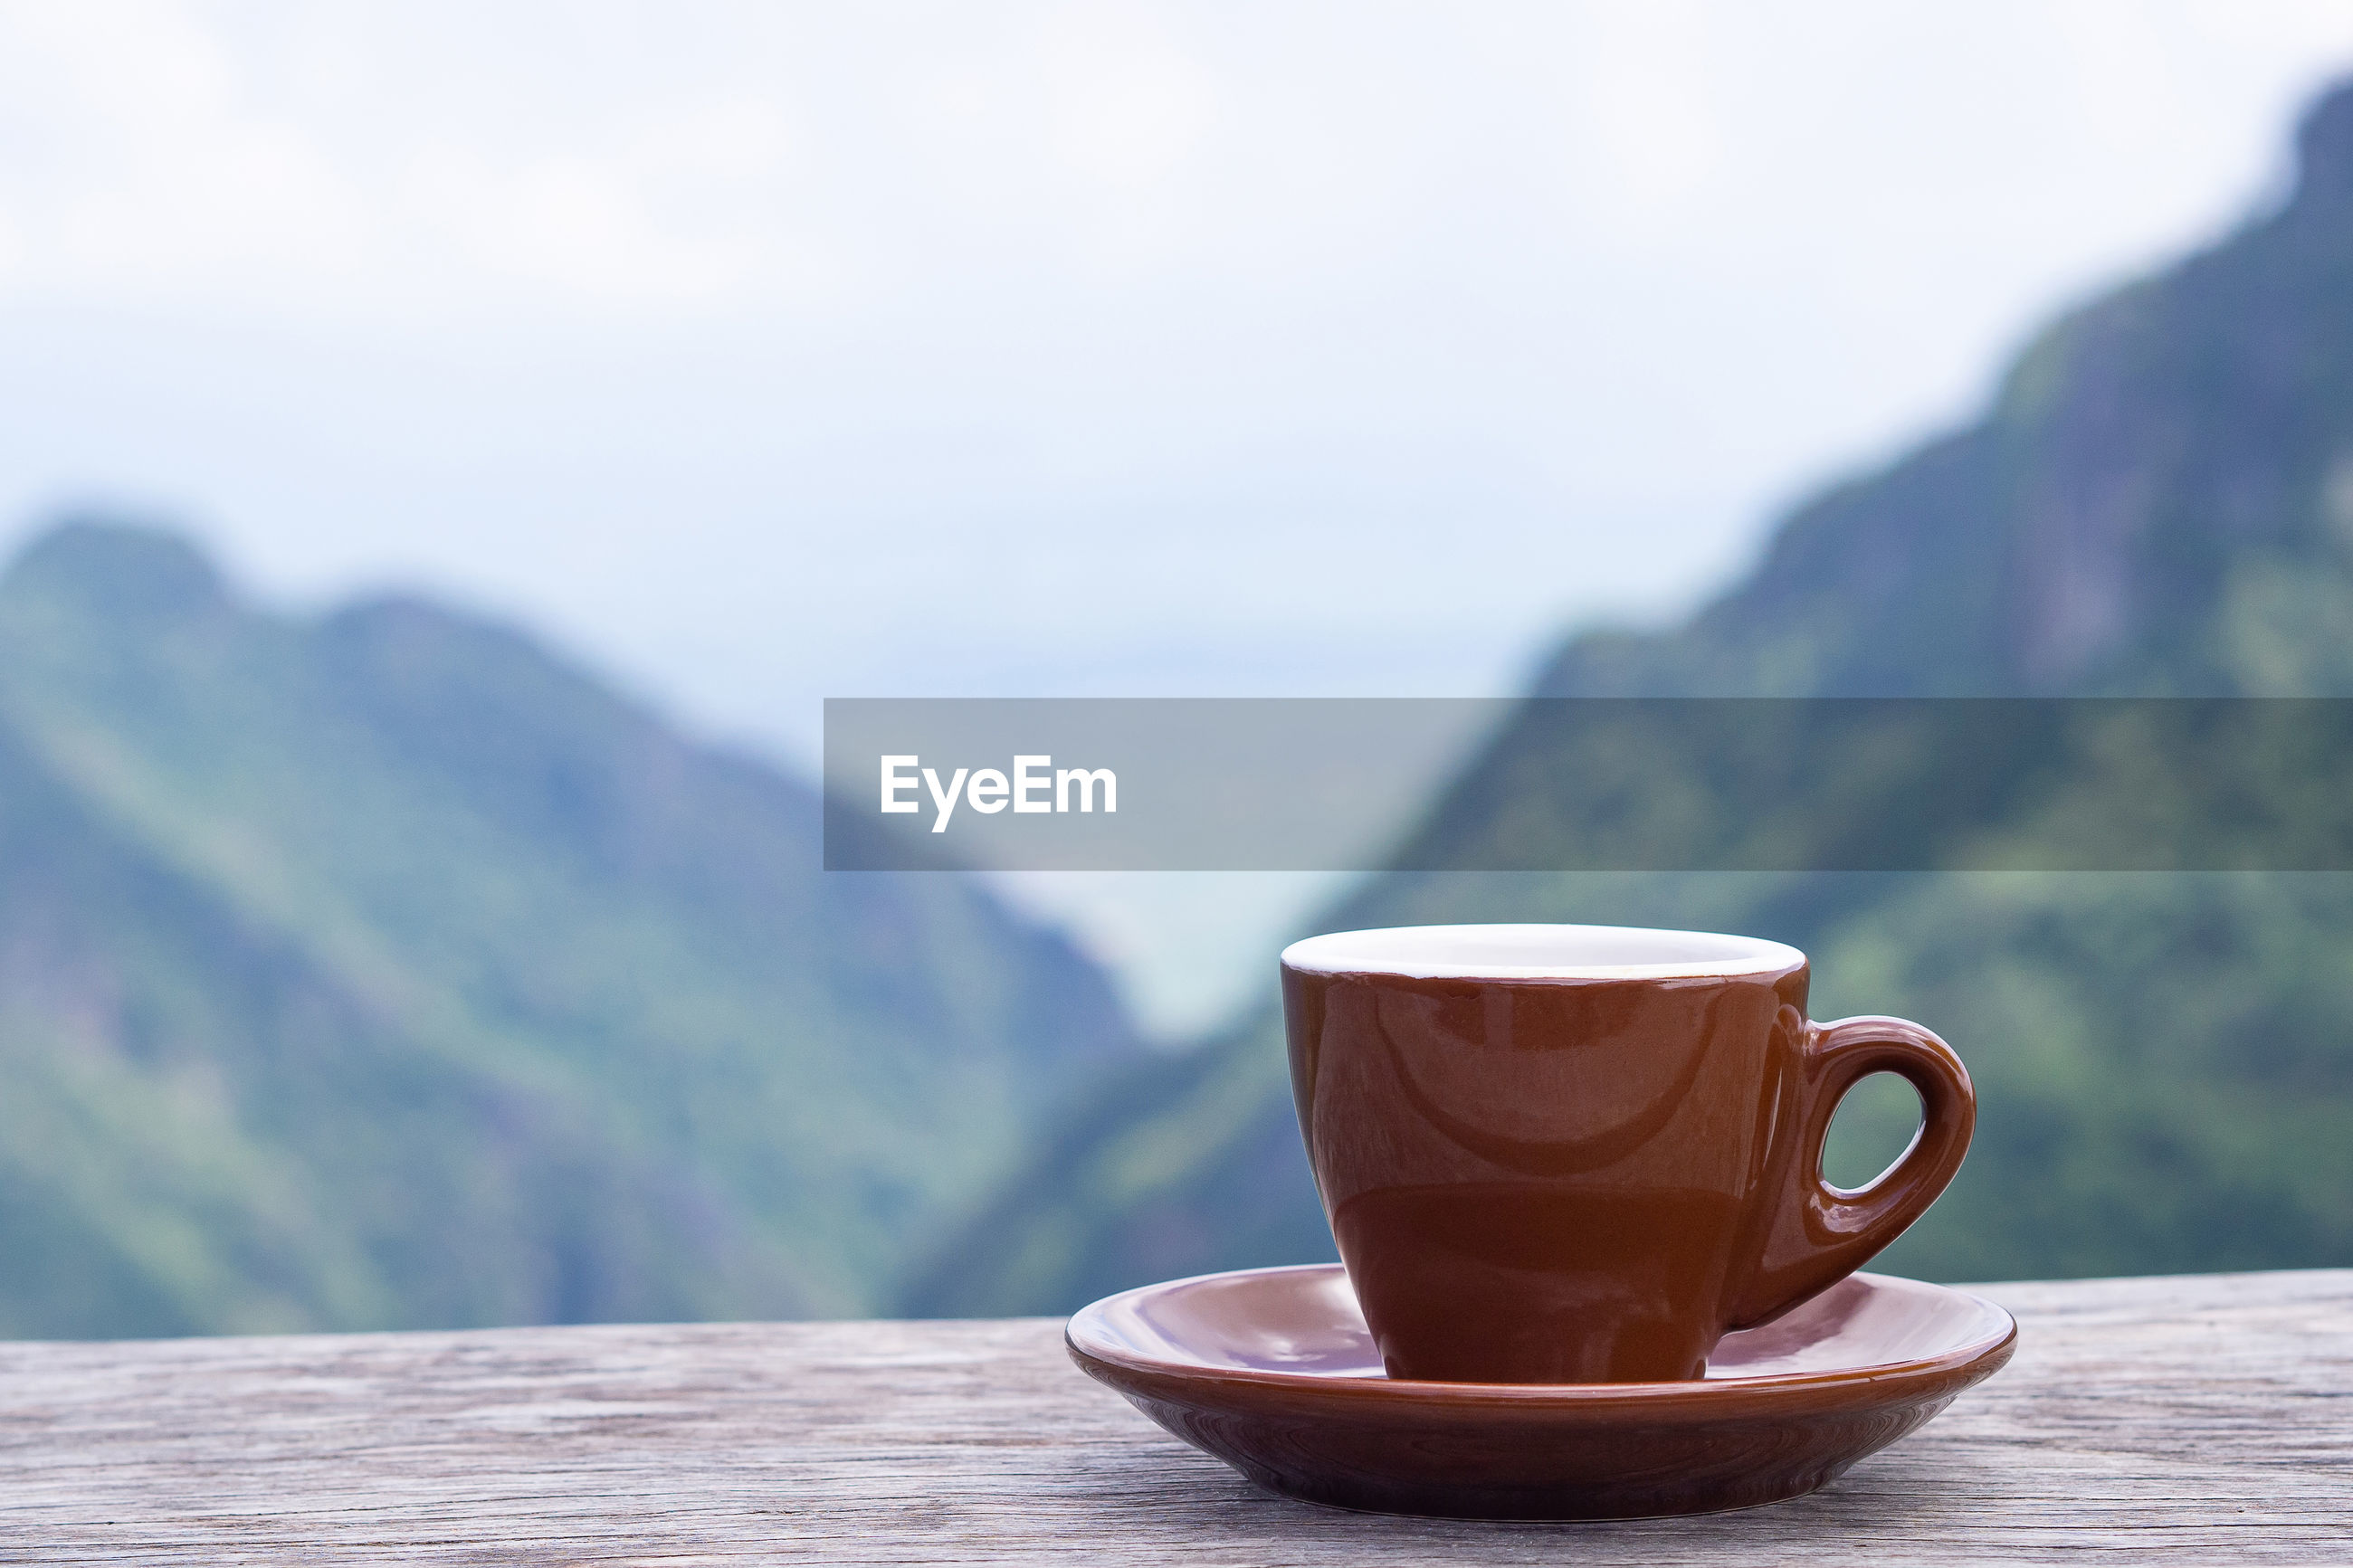 A brown coffee cup on wooden table with beautiful scenery view of mountains.